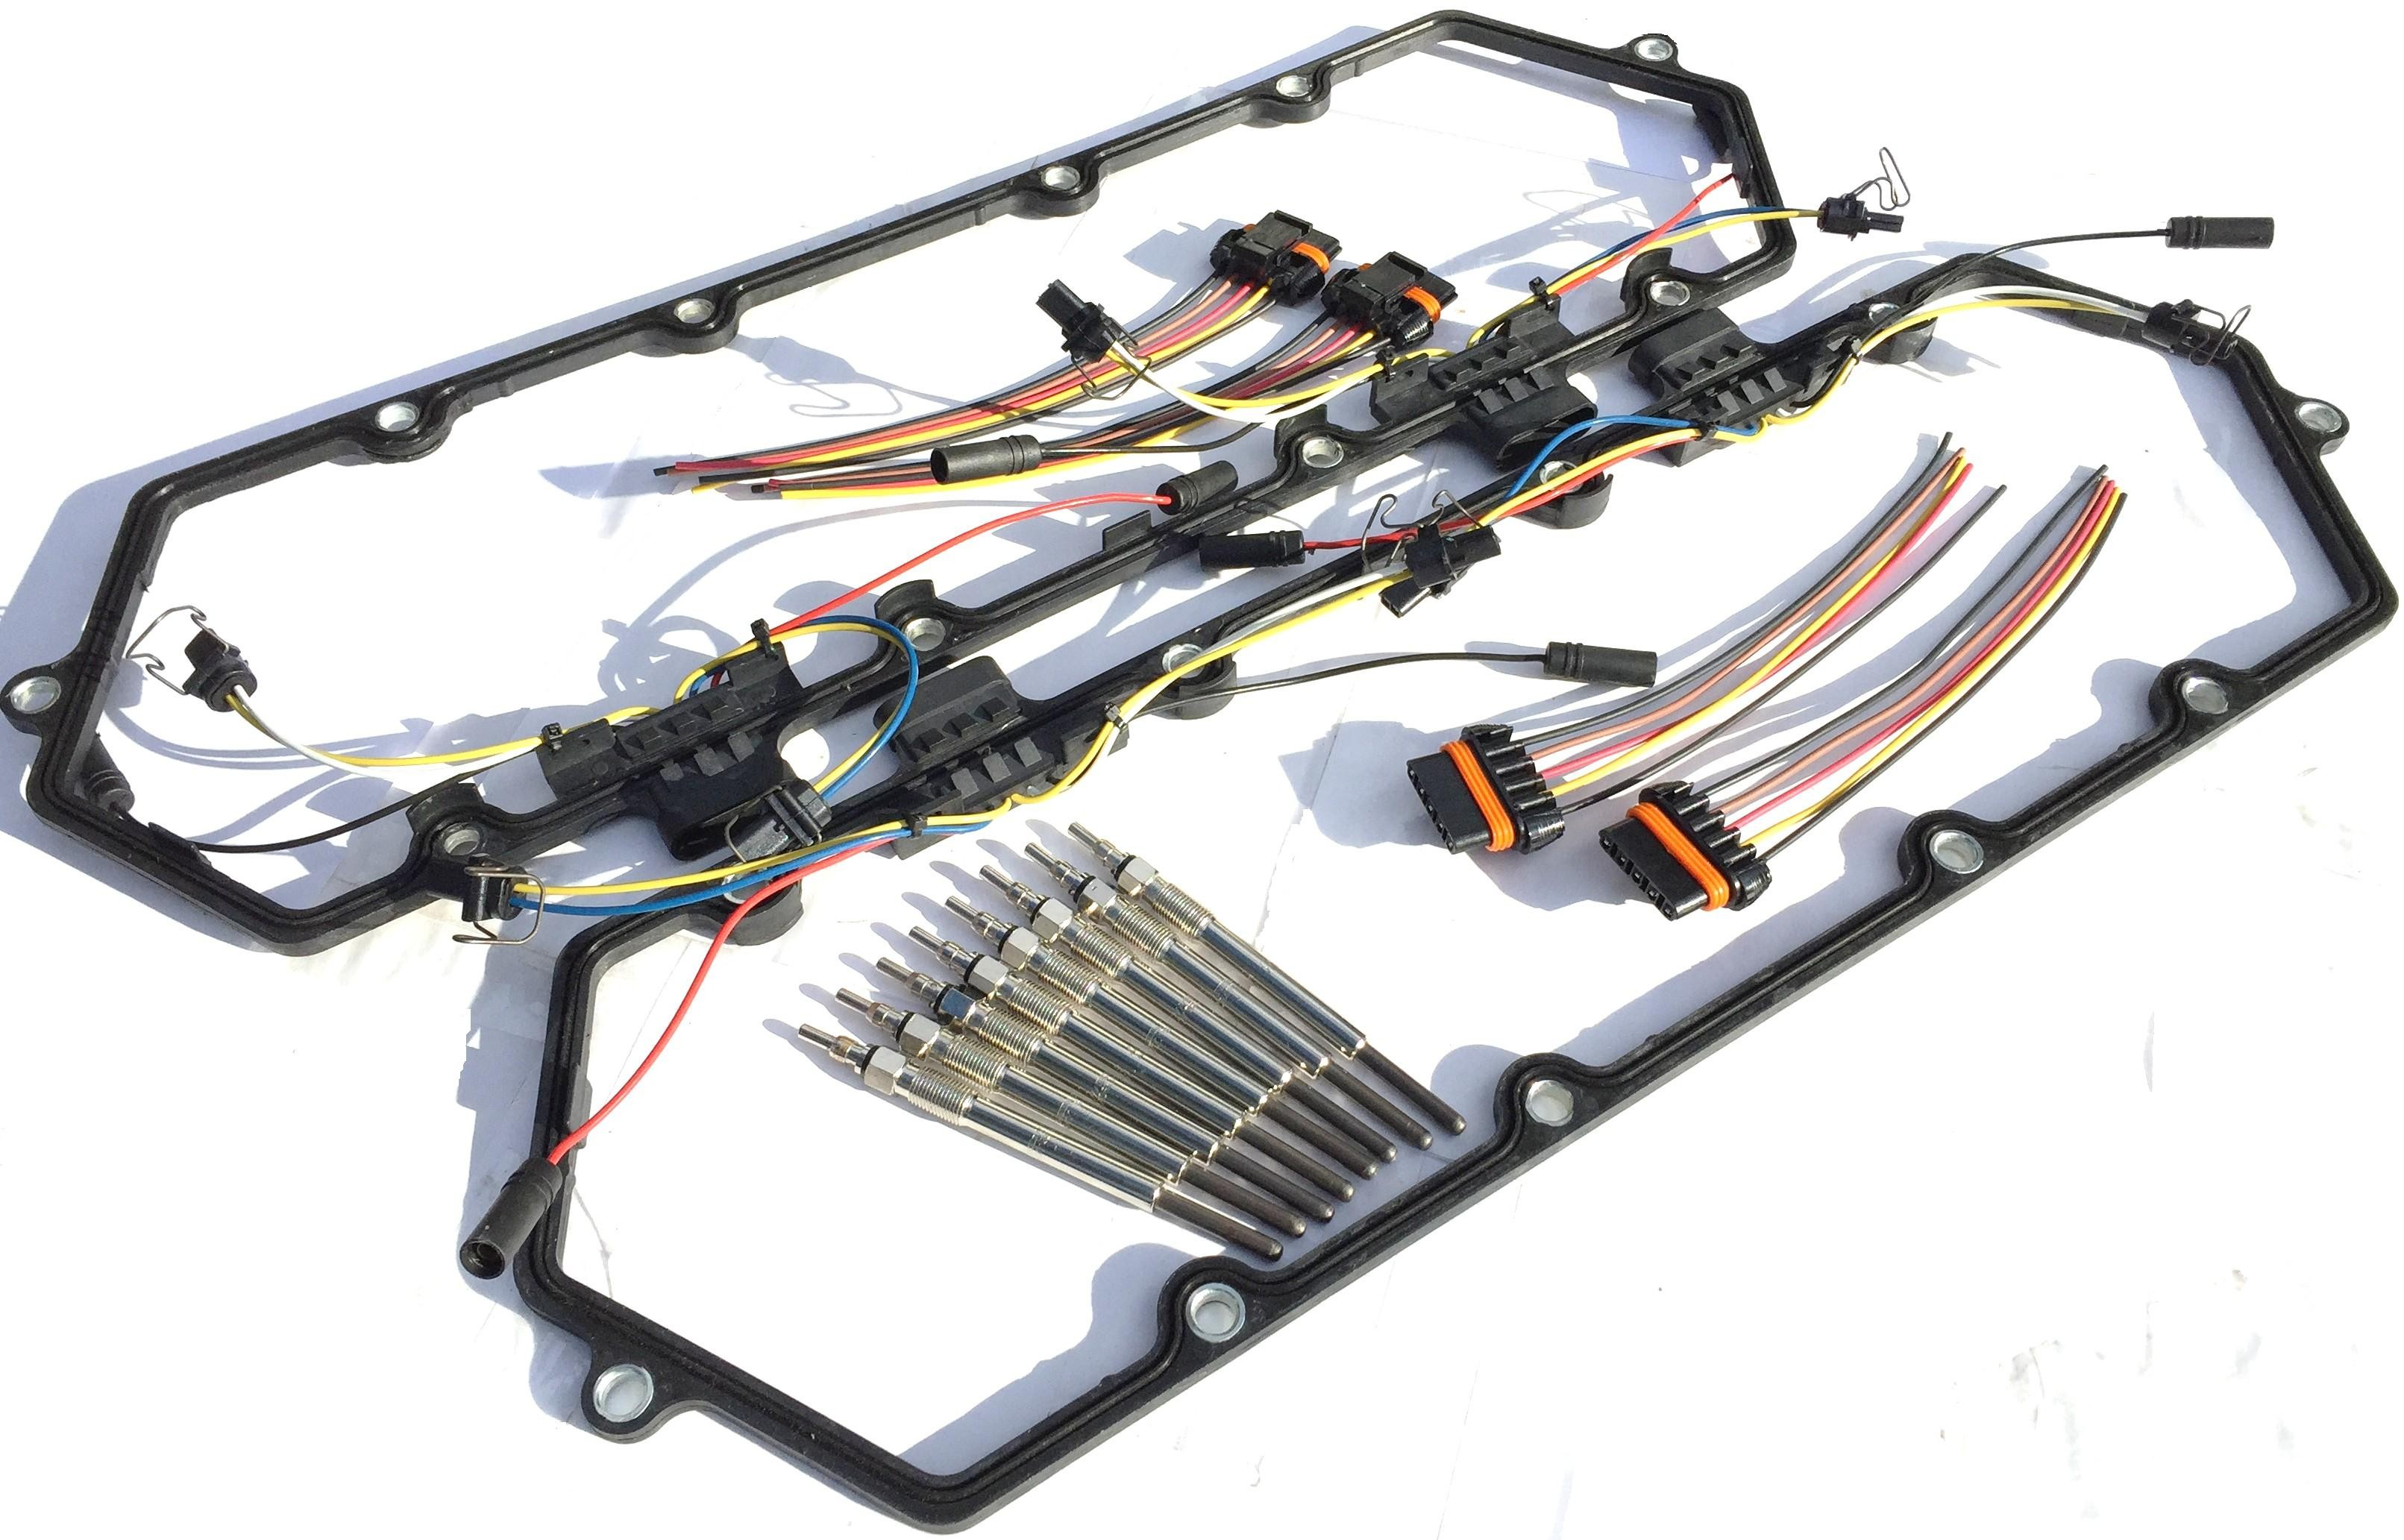 Ford 7 3 L Glow Plug Wiring Harness Books Of Diagram Idi 1994 1997 Powerstroke 3l Diesel Plugs Kit